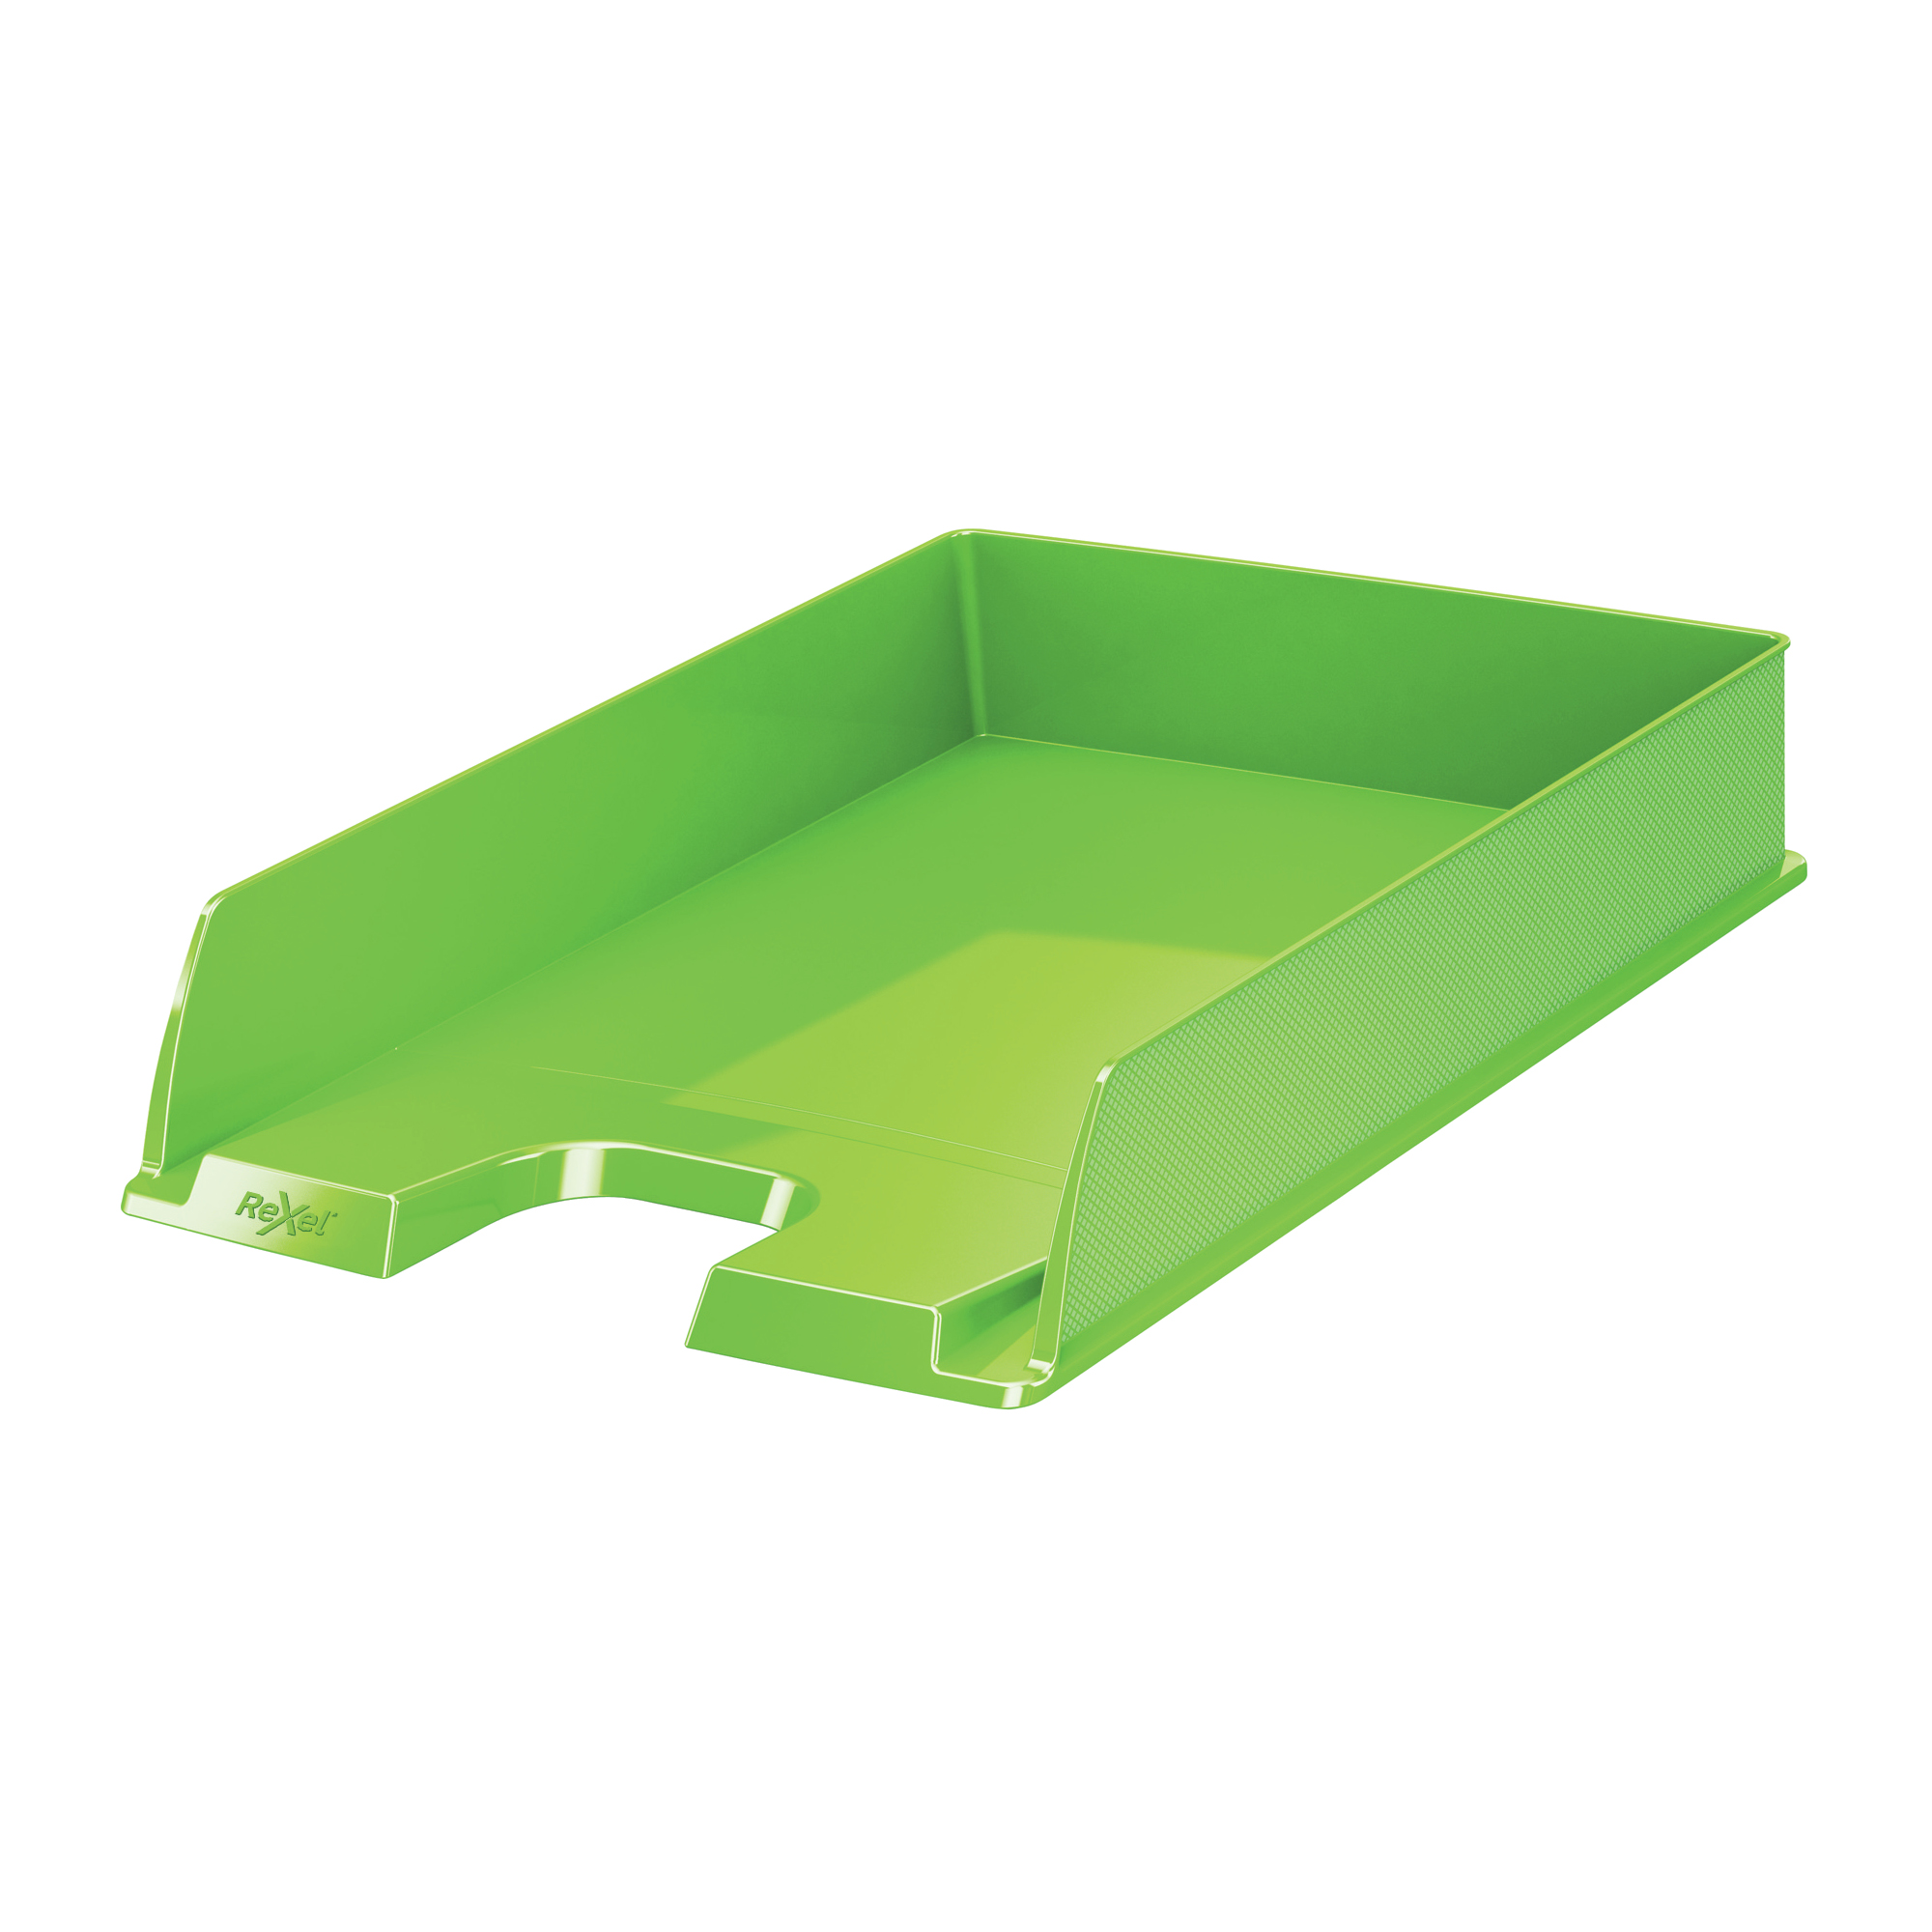 Desktop trays or organizers Rexel Choices Letter Tray PP A4 254x350x61mm Green Ref 2115600